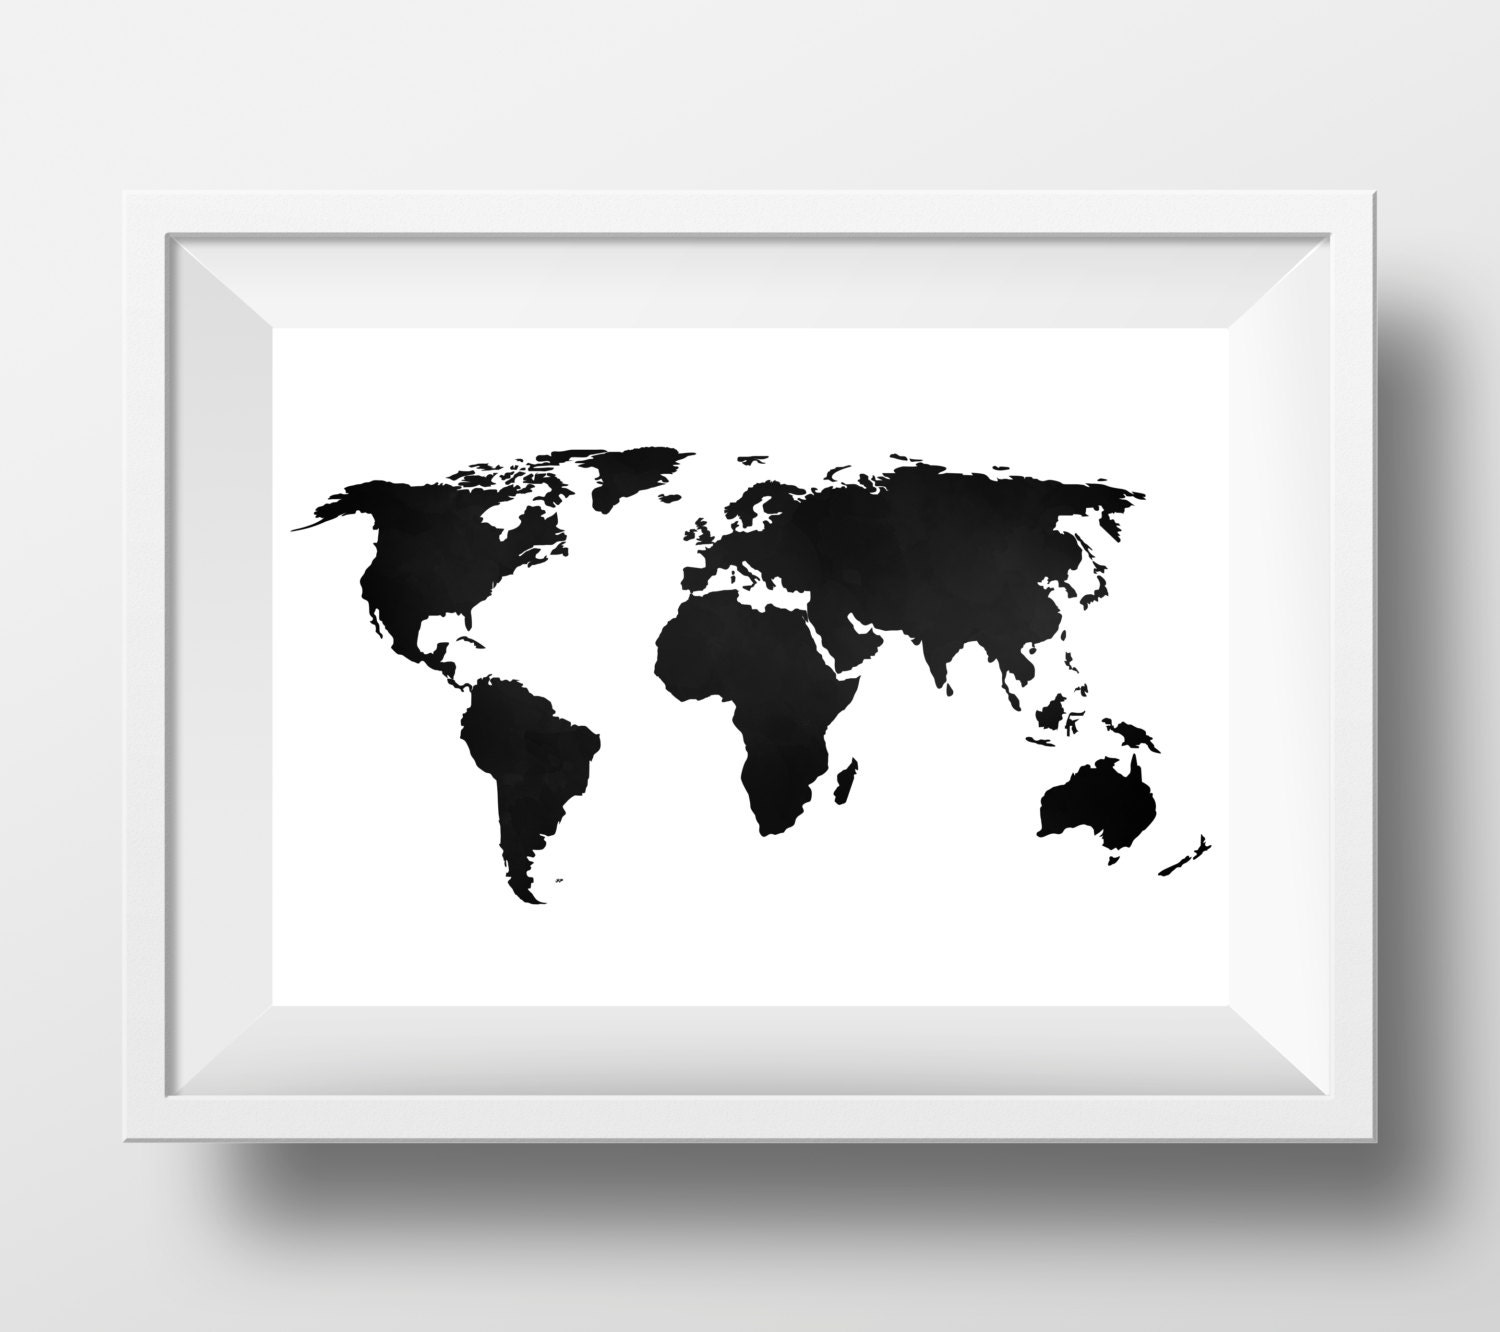 world map print world map poster black and white large. Black Bedroom Furniture Sets. Home Design Ideas